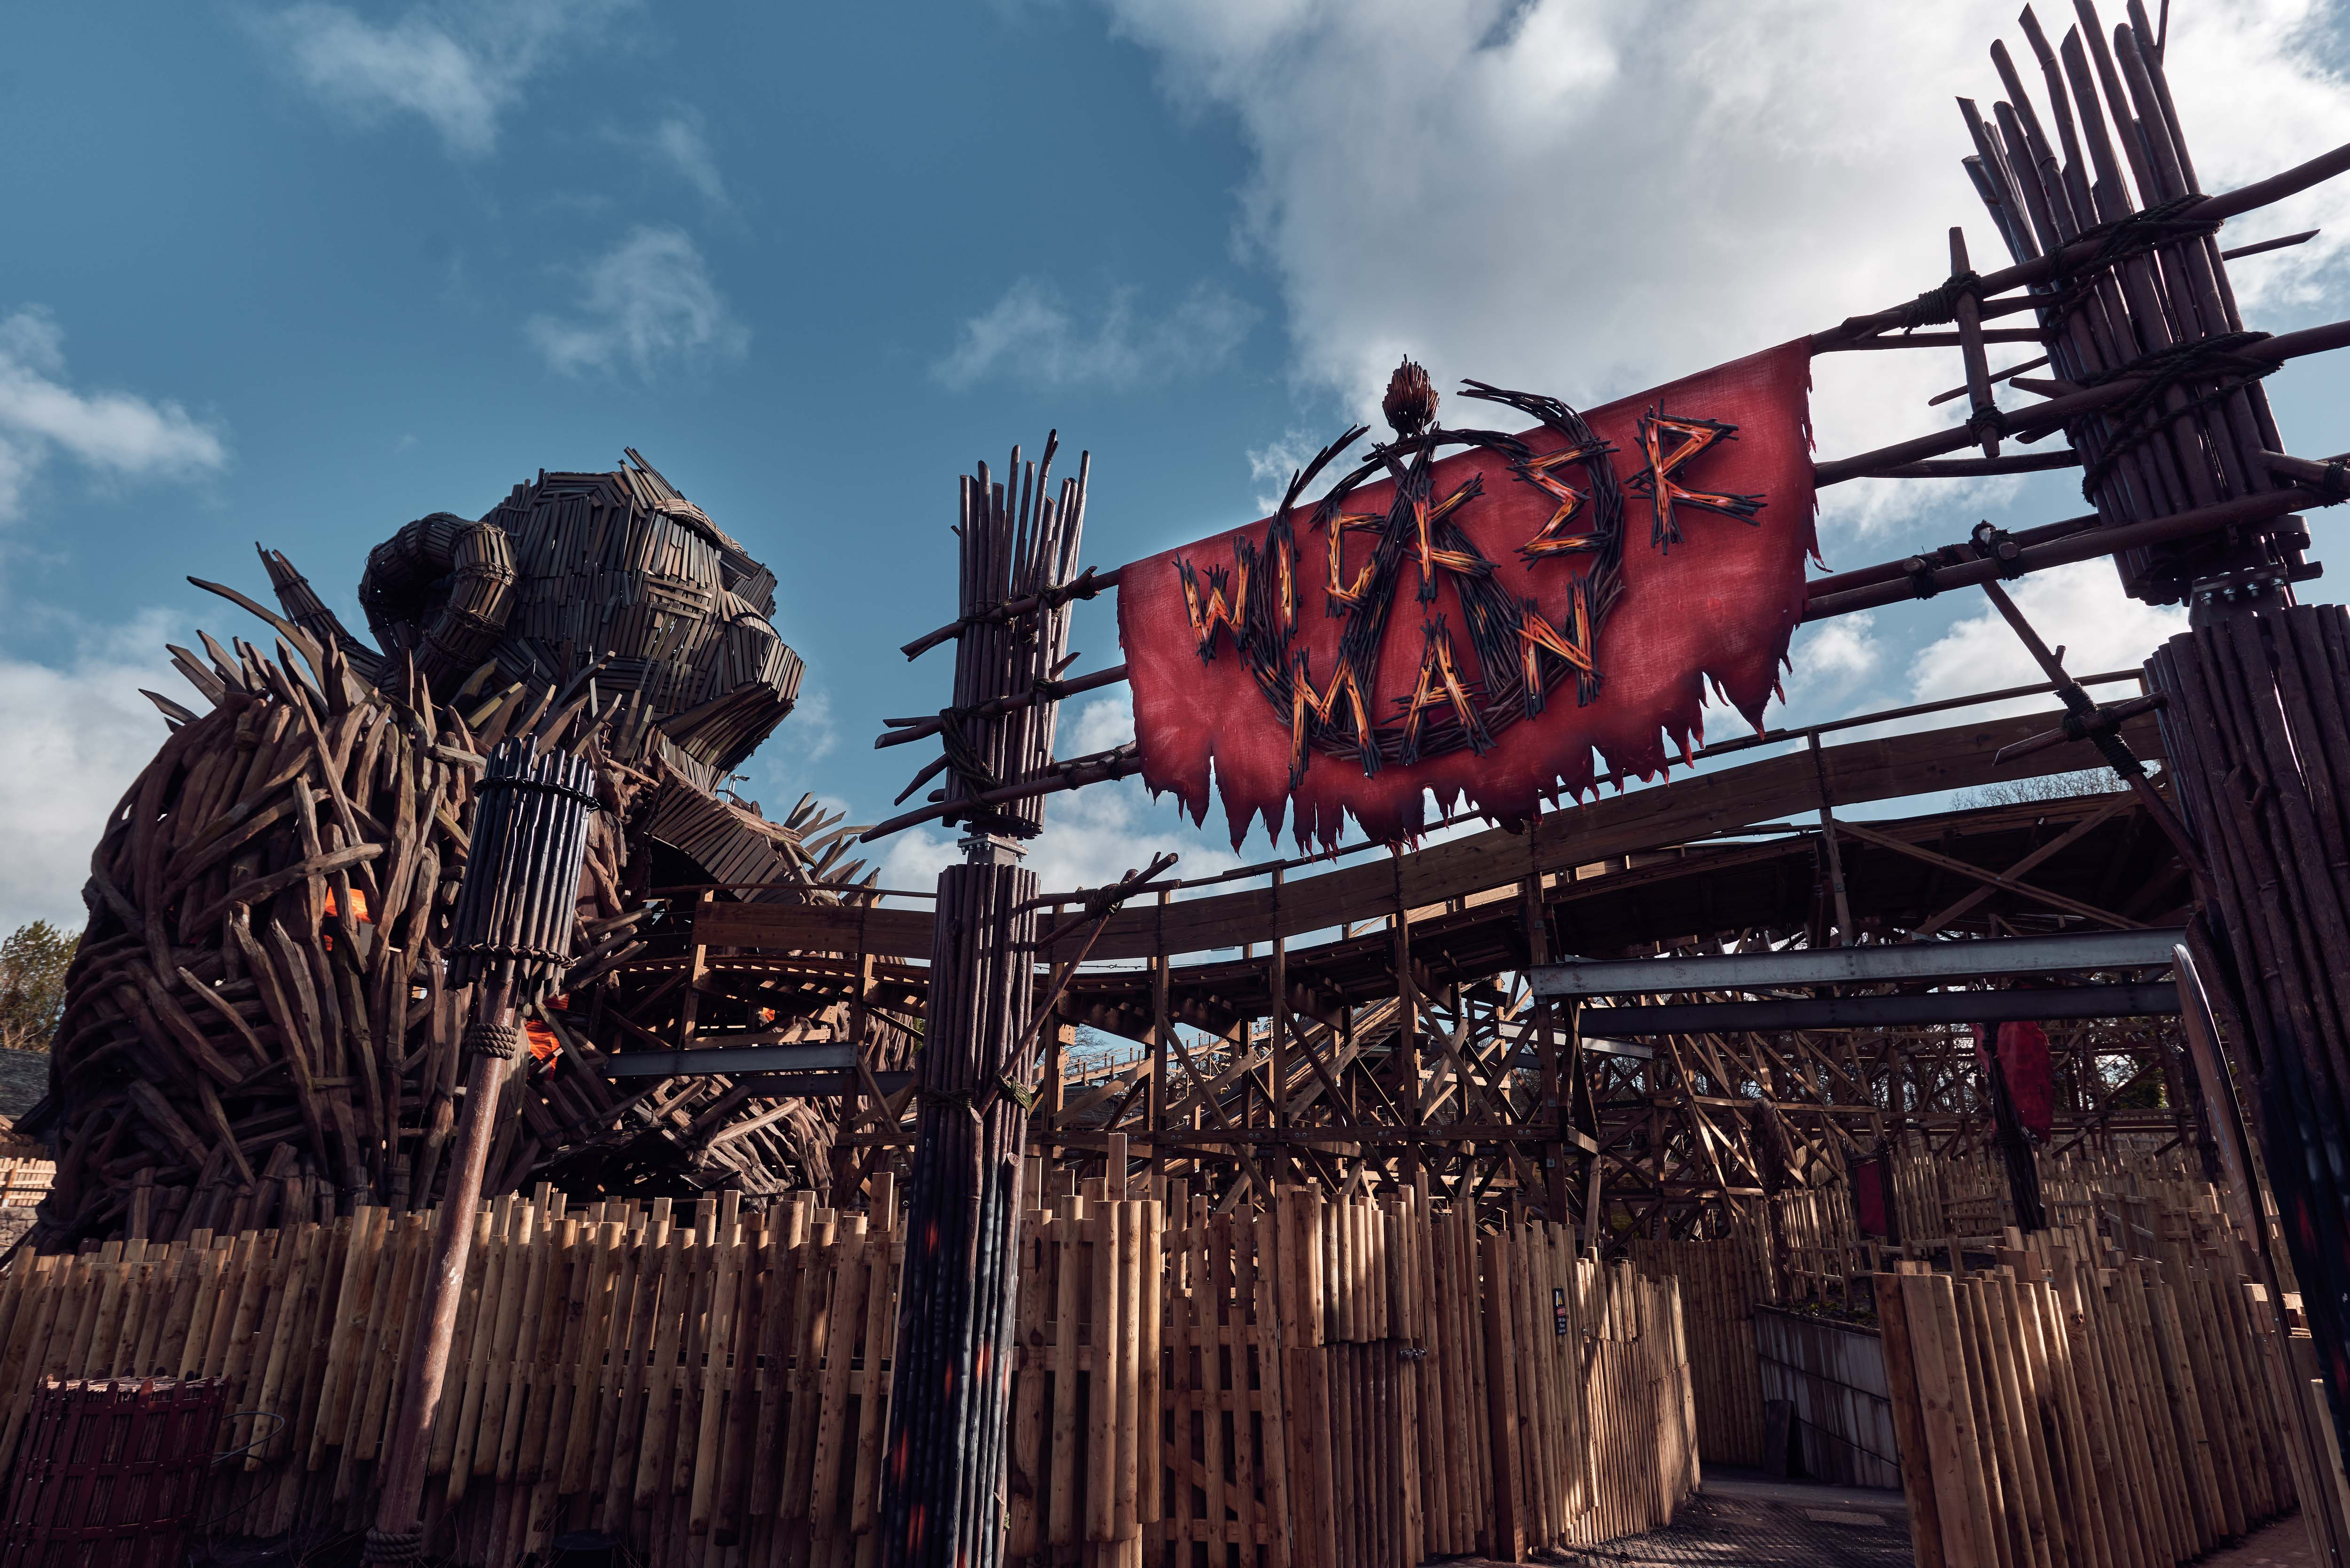 Alton Towers Wickerman PR Handout - free for editorial usage only. Photographer's name must remain part of credit metadata when distributed by agencies Credit: Mikael Buck / Alton Towers Copright: © Mikael Buck